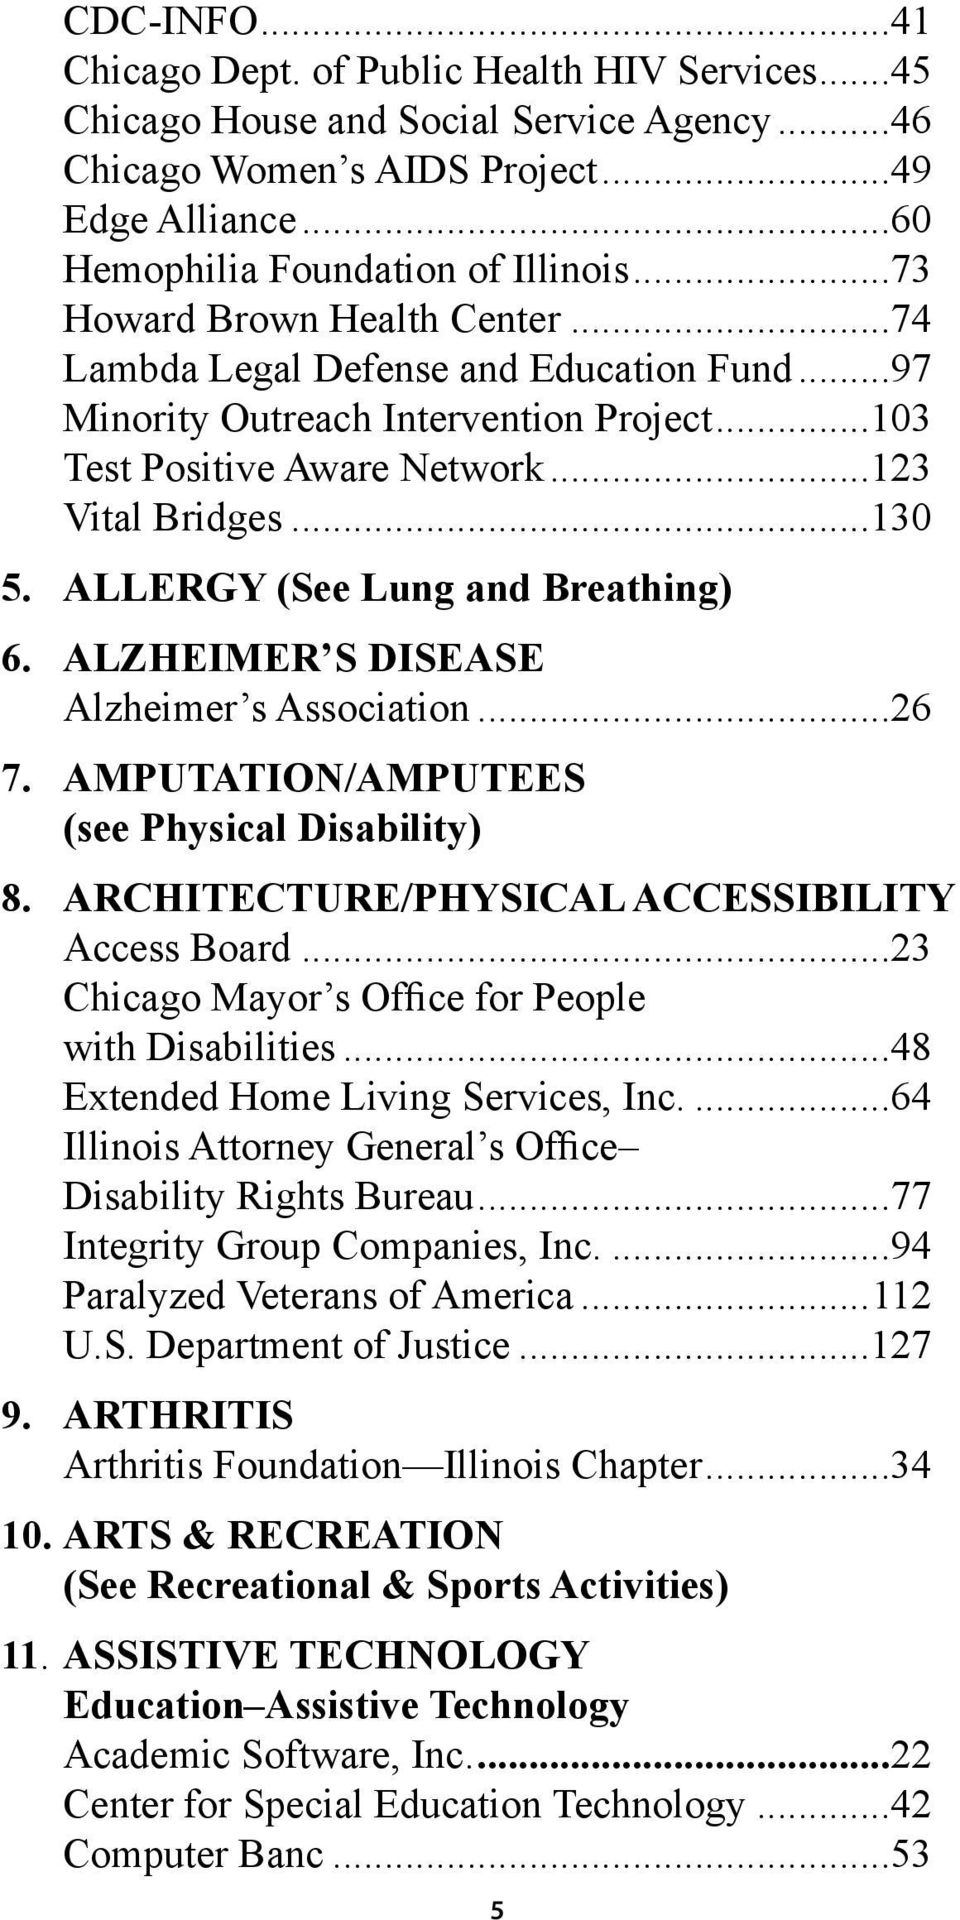 ALLERGY (See Lung and Breathing) 6. ALZHEIMER S DISEASE Alzheimer s Association...26 7. AMPUTATION/AMPUTEES (see Physical Disability) 8. ARCHITECTURE/PHYSICAL ACCESSIBILITY Access Board.